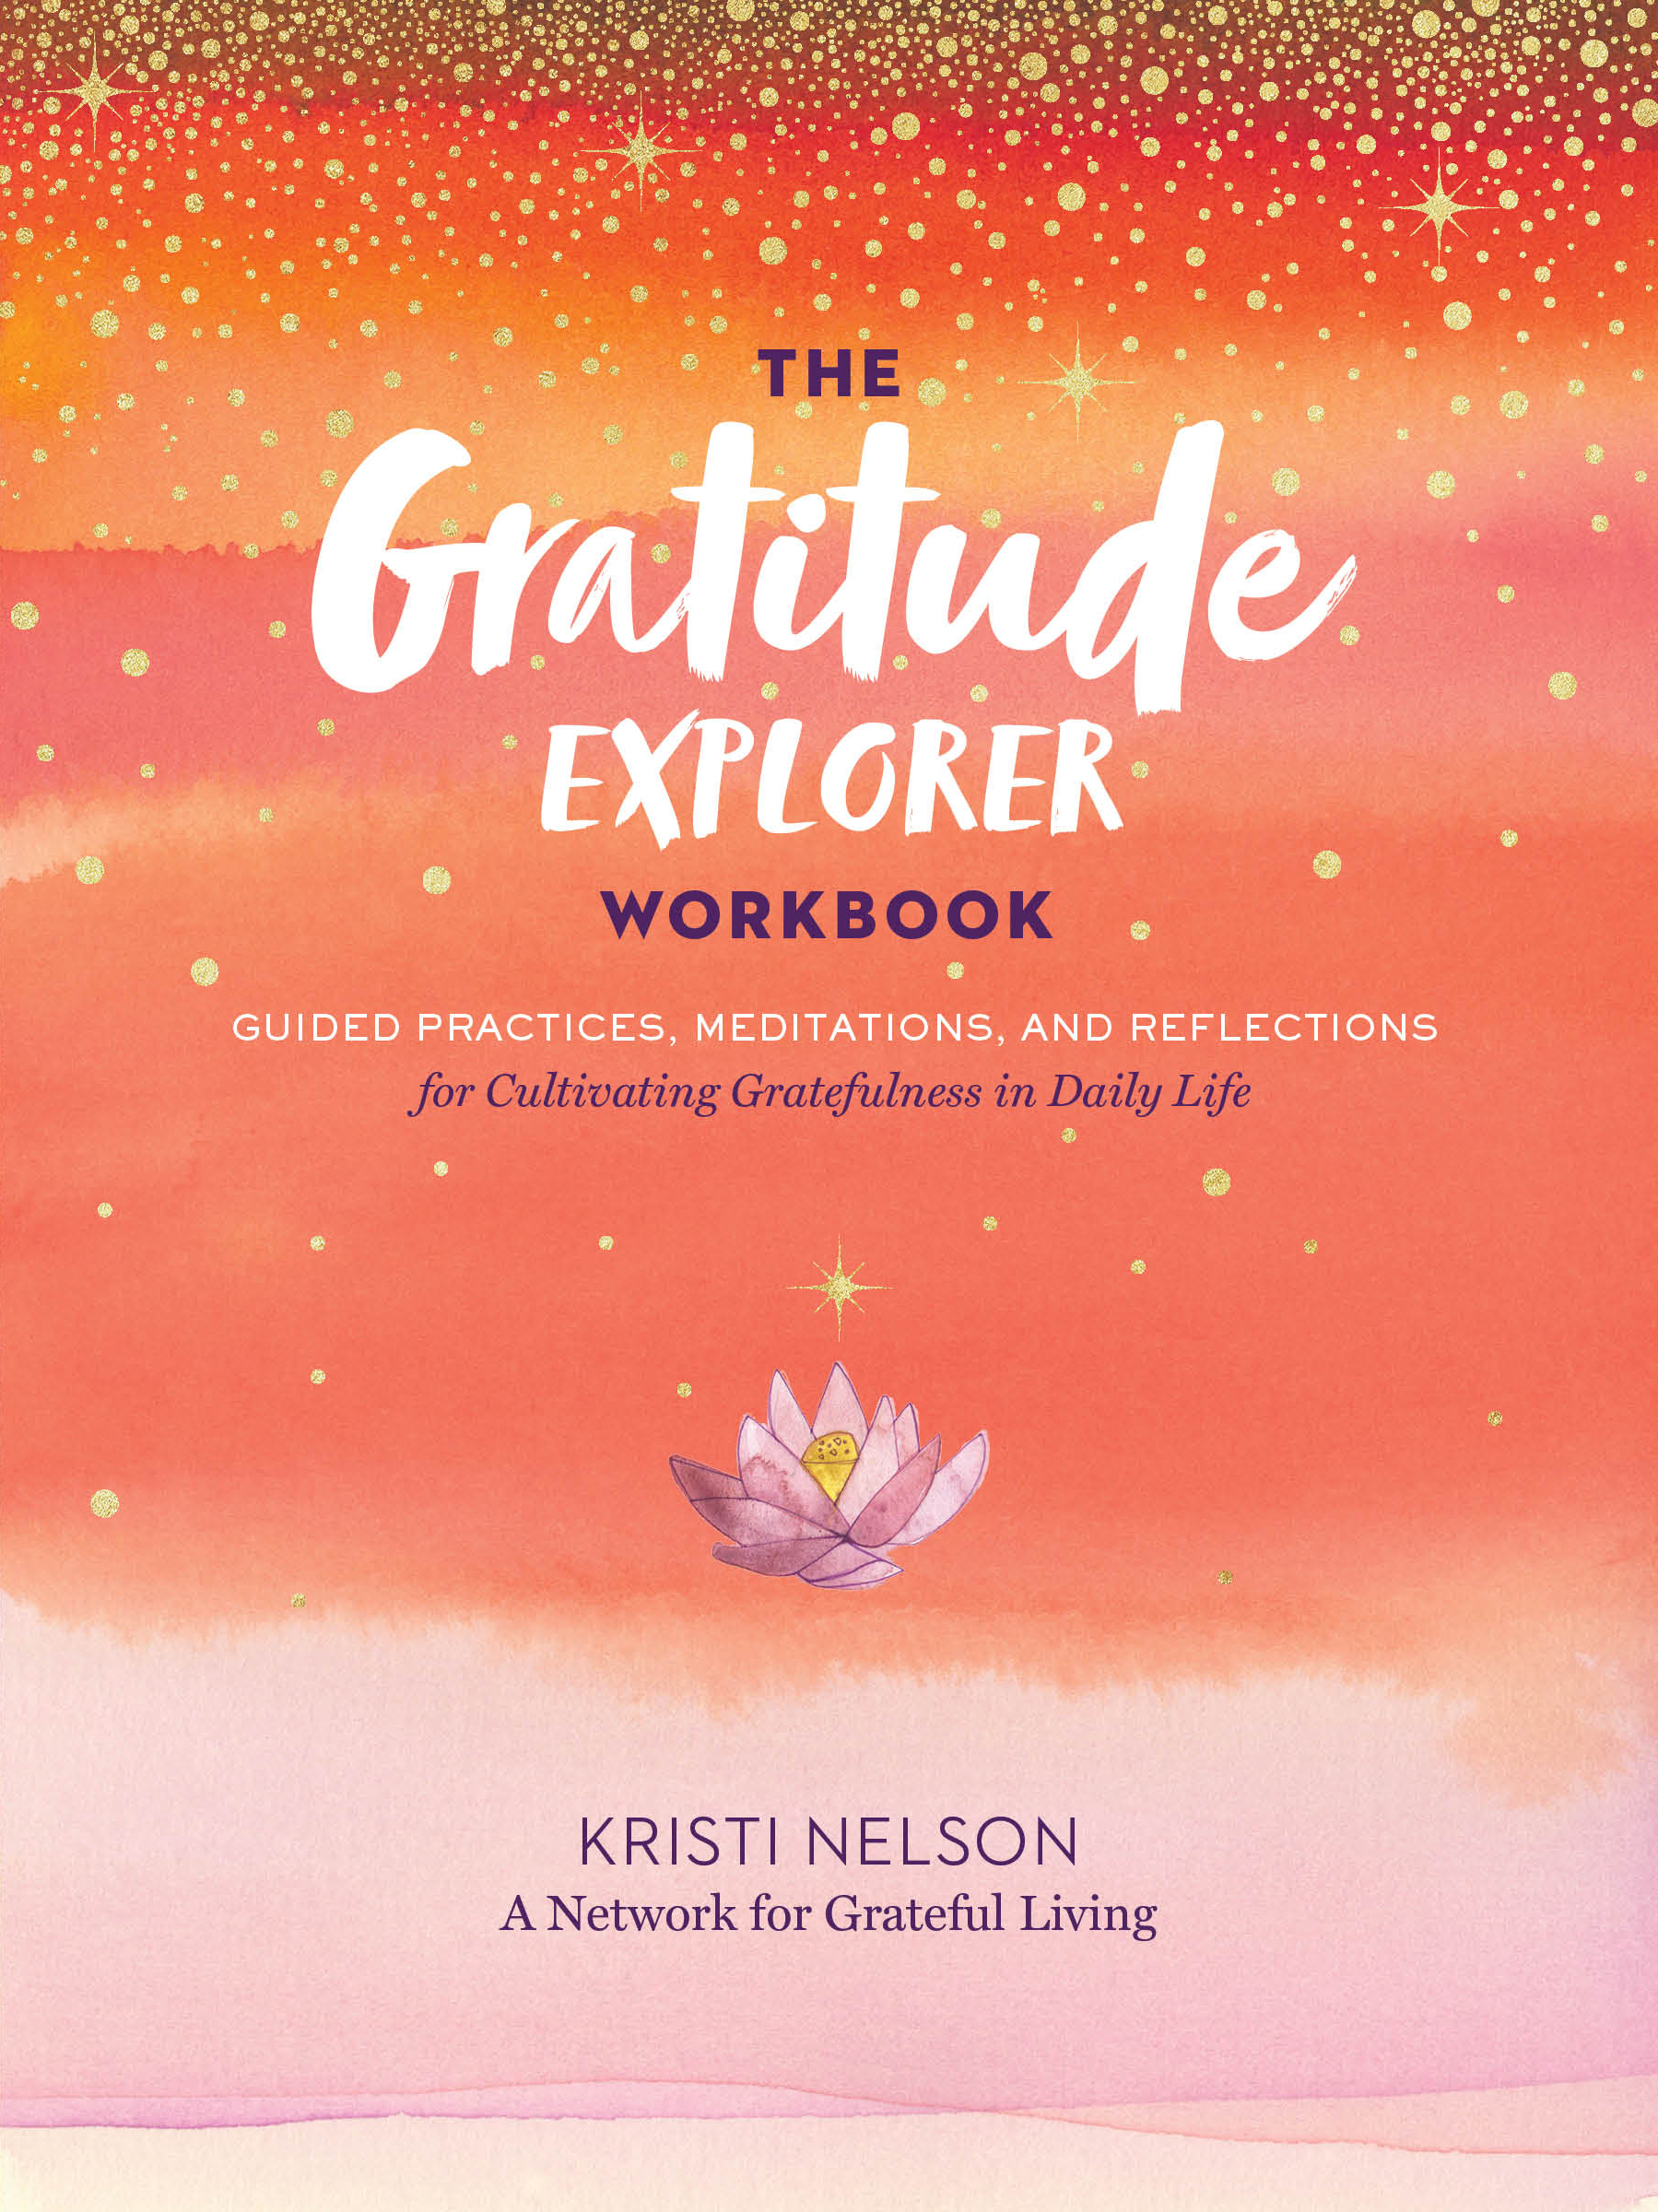 The Gratitude Explorer Workbook Guided Practices, Meditations, and Reflections for Cultivating Gratefulness in Daily Life - Kristi Nelson